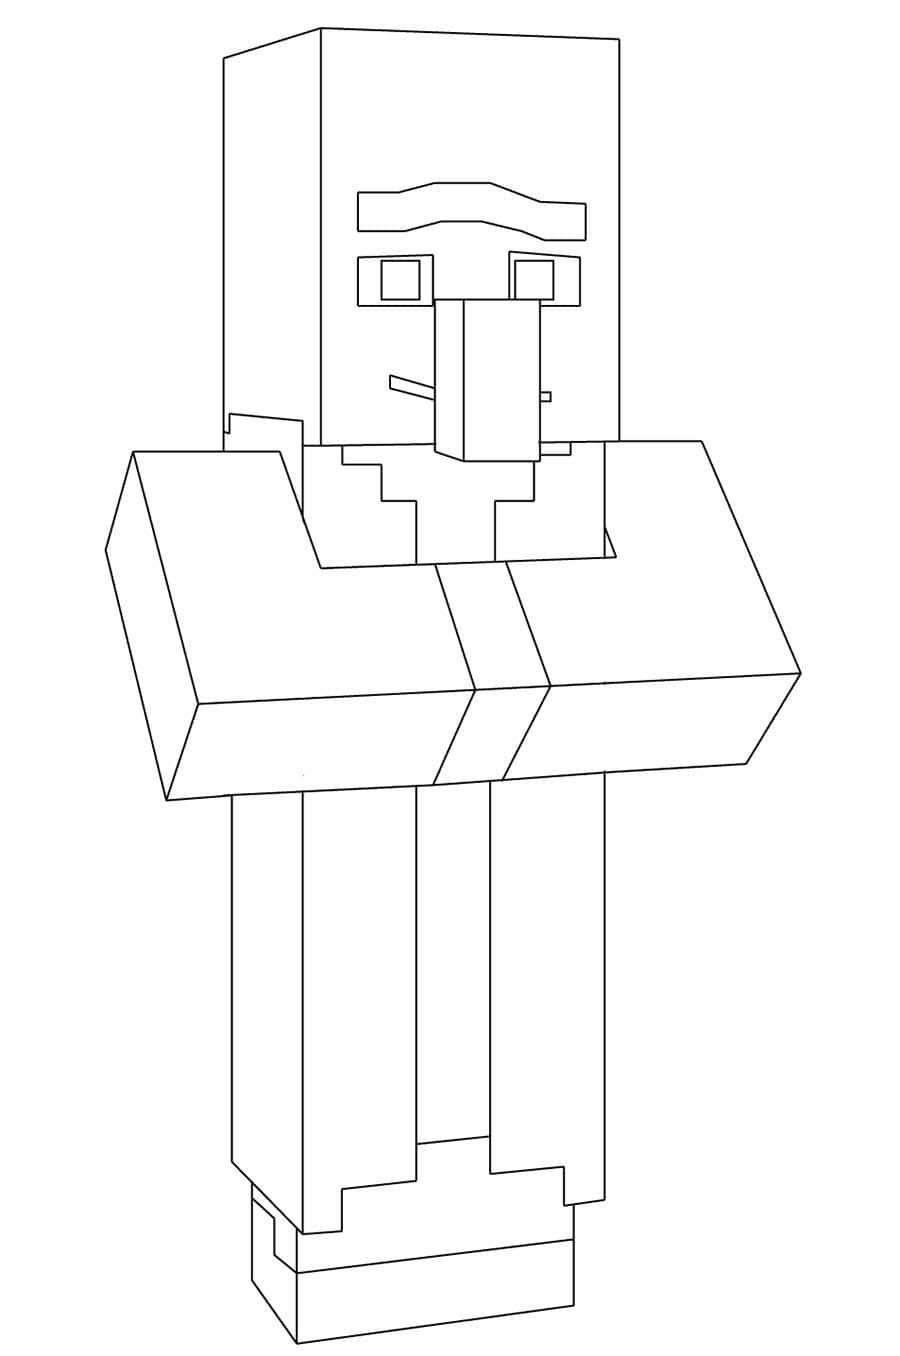 Minecraft Coloring Pages Print Them For Free 100 Pictures From The Game Minecraft Coloring Pages Lego Coloring Pages Coloring Pages